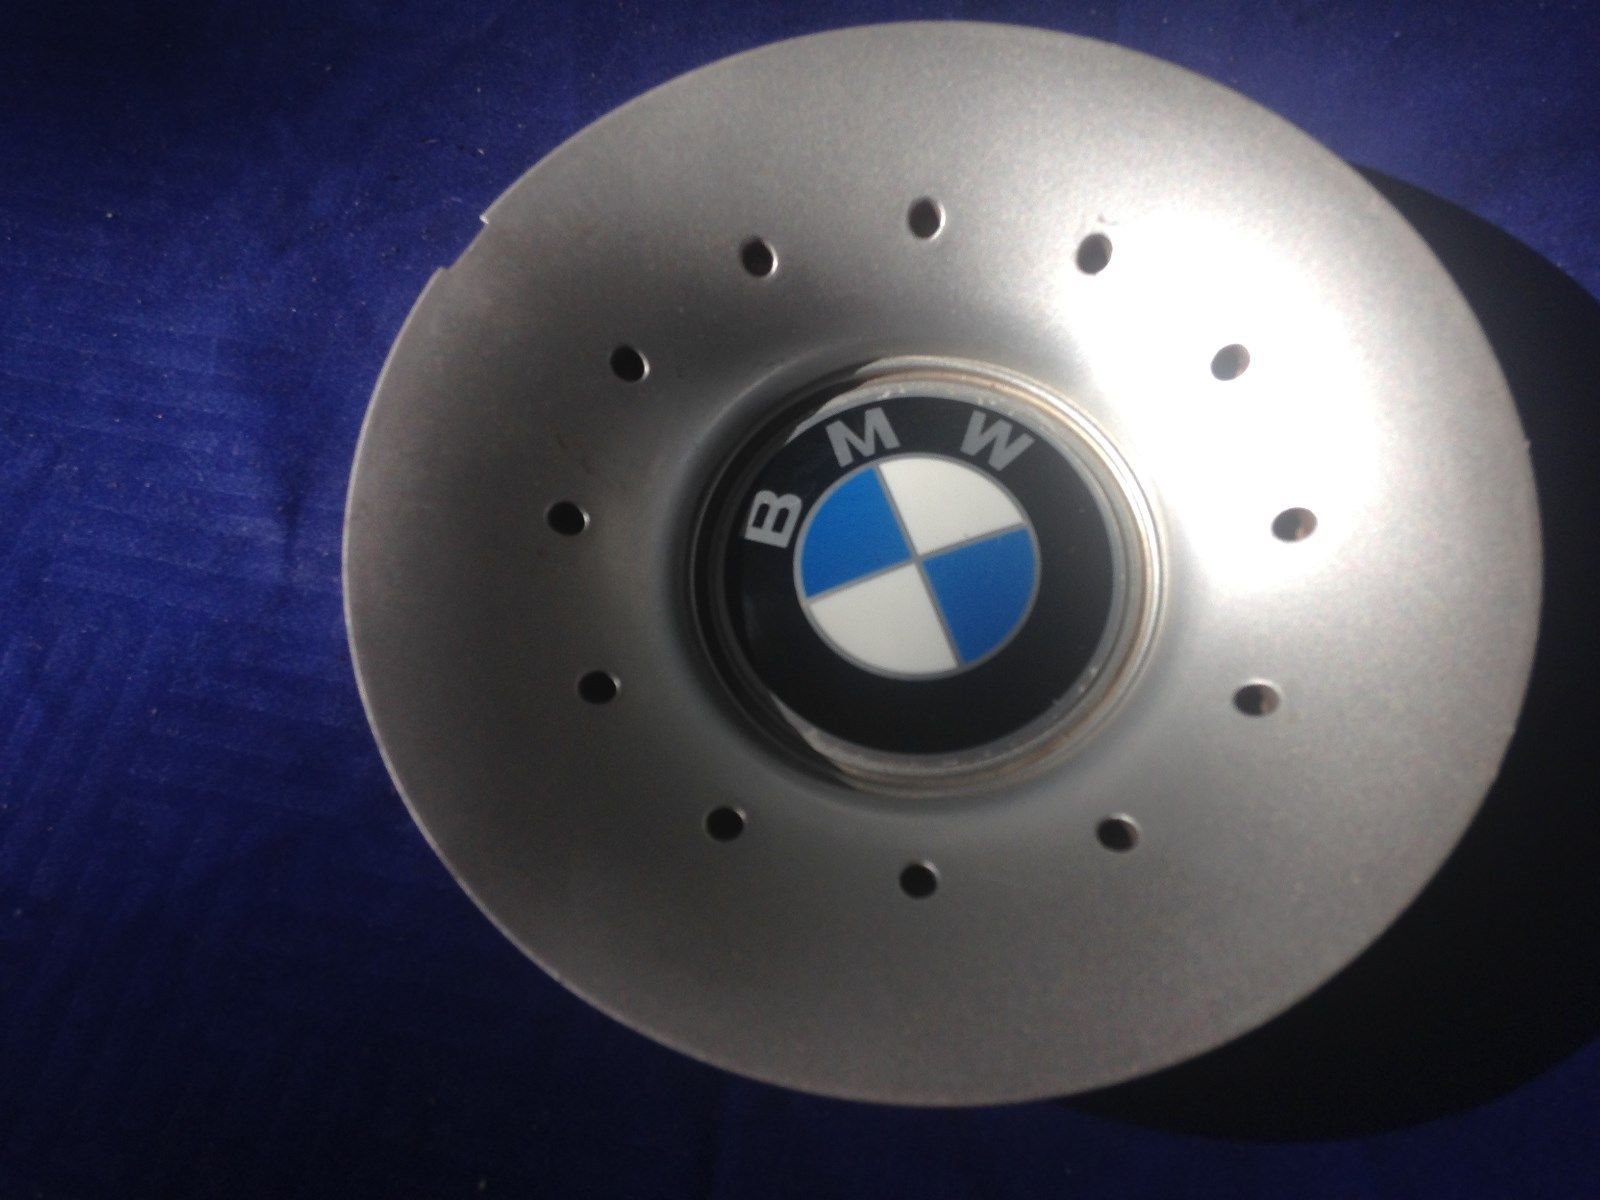 mbworld bmw image forums amg cap center org caps recommendations